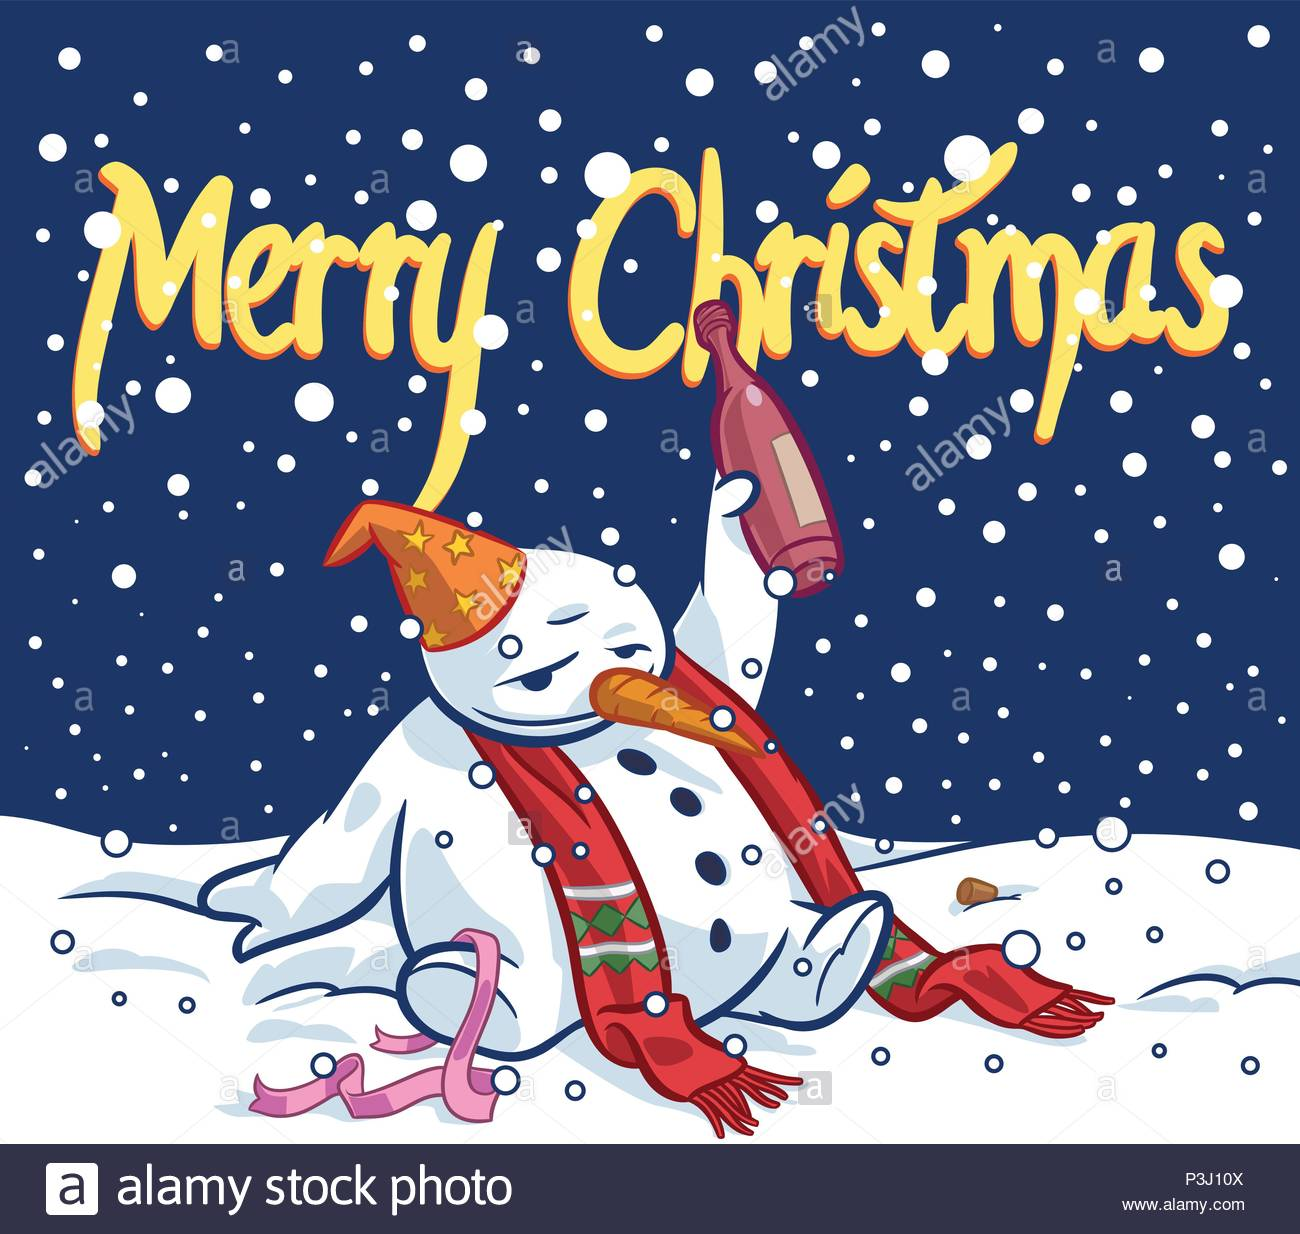 Drunk Snowman And Merry Christmas Wishes Global Colors Used Stock